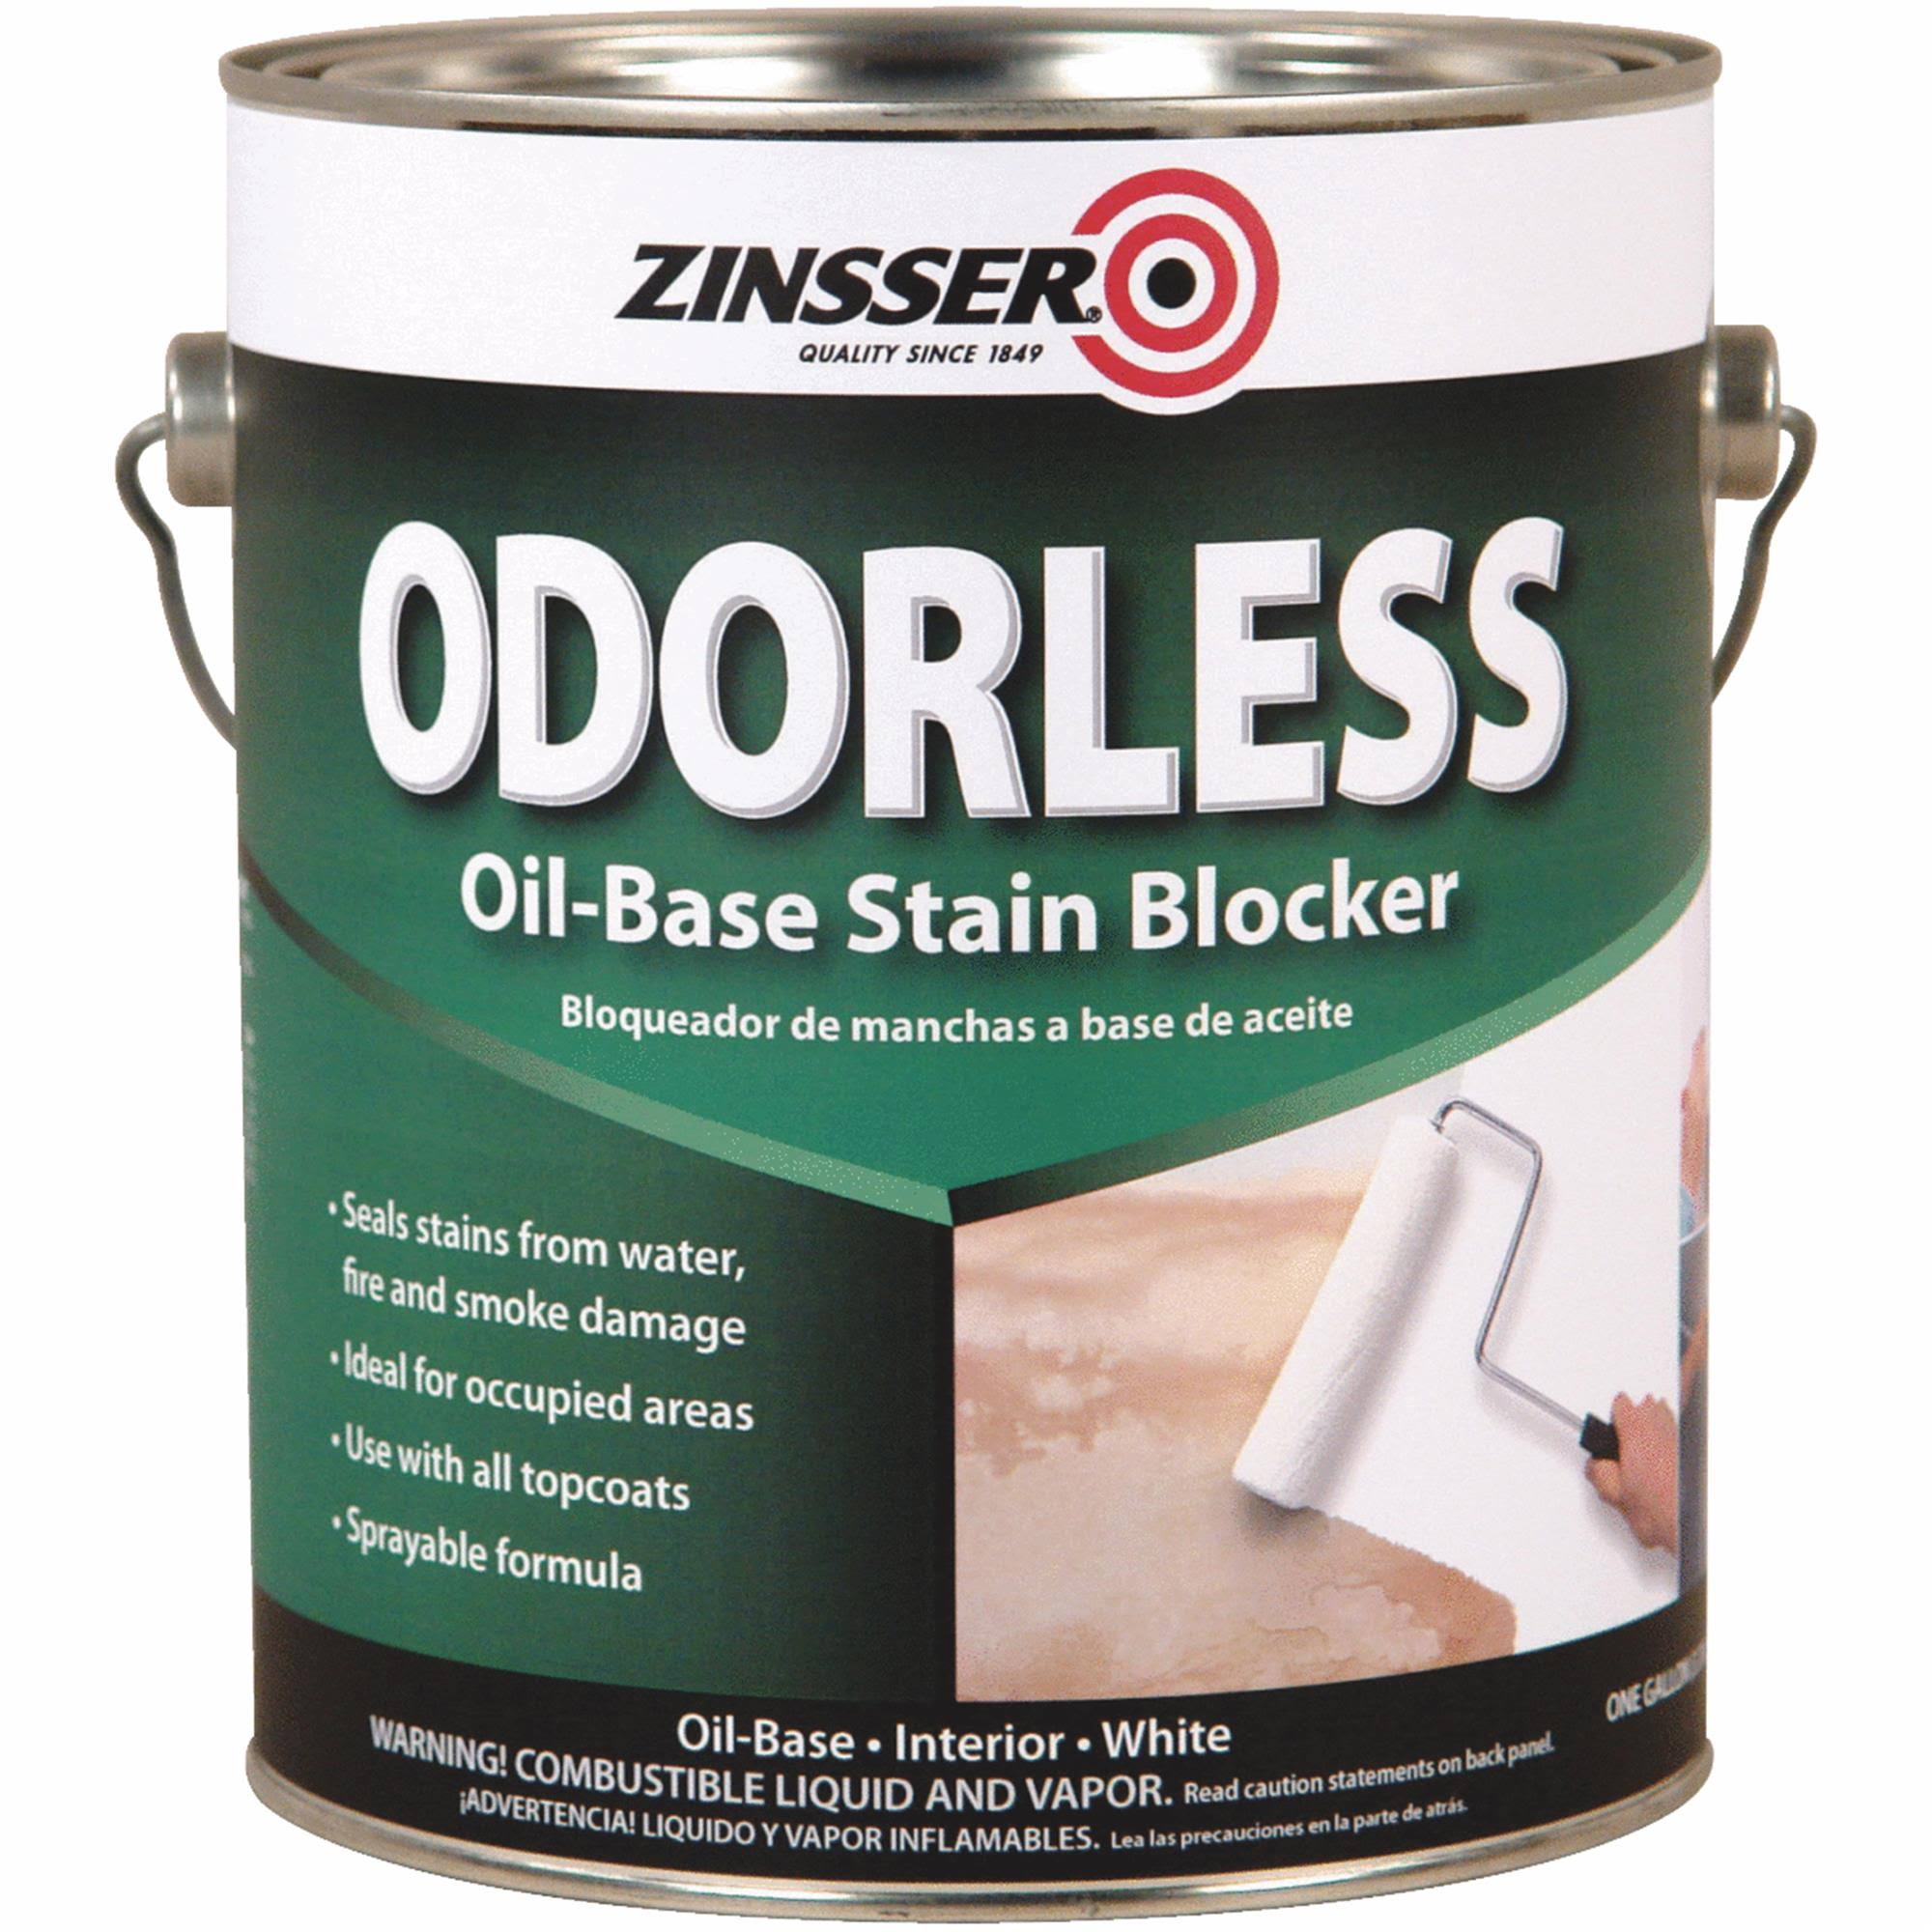 Zinsser Bullseye Odorless Oil Base Stain Blocker - White, 1 Gallon